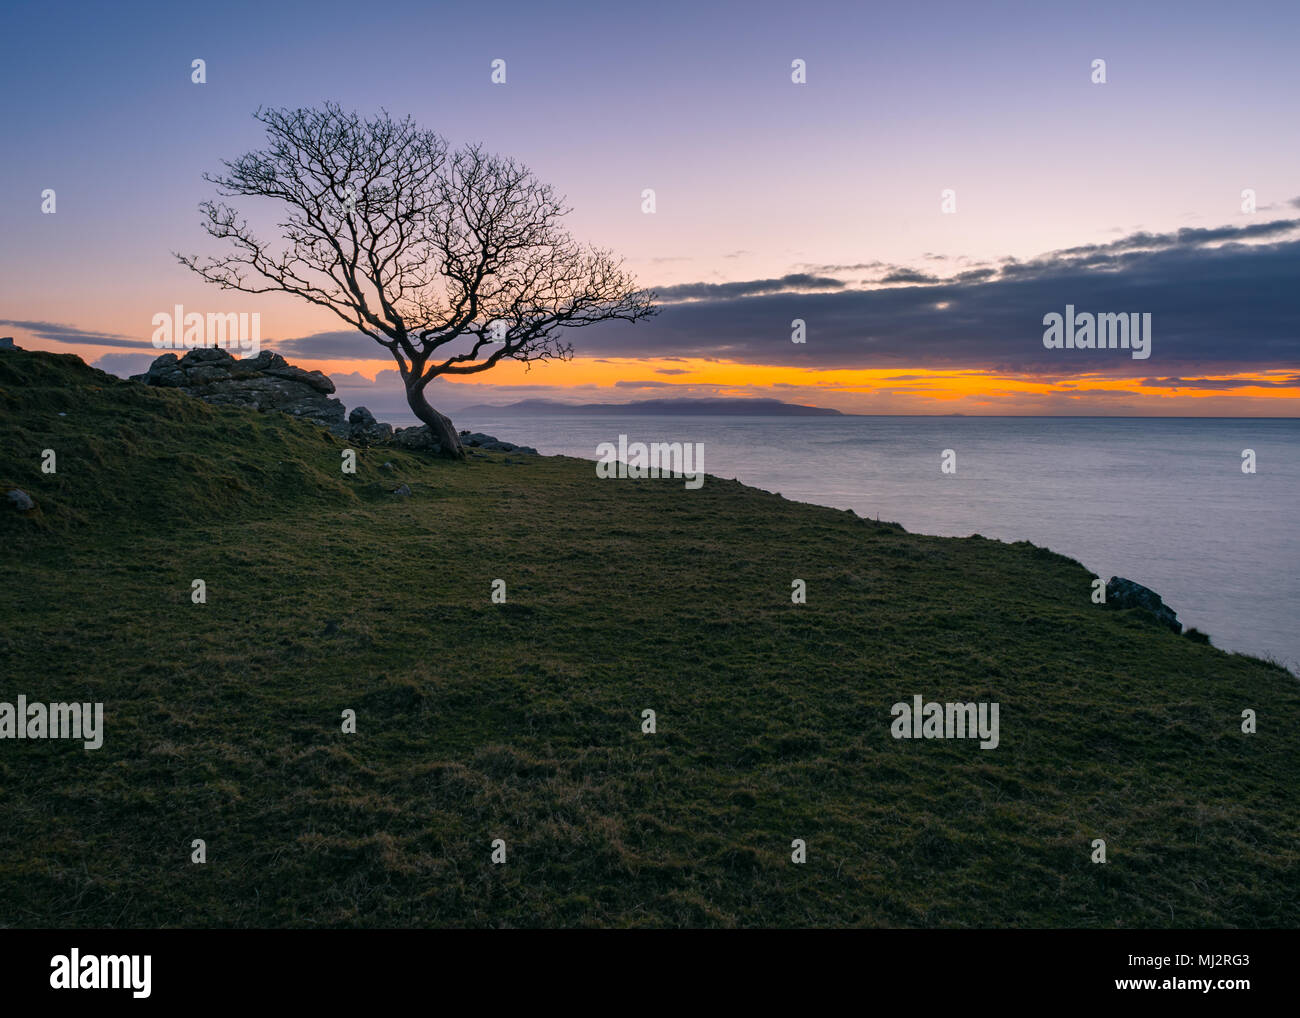 Magical tree in murlough bay in Northern Ireland Stock Photo